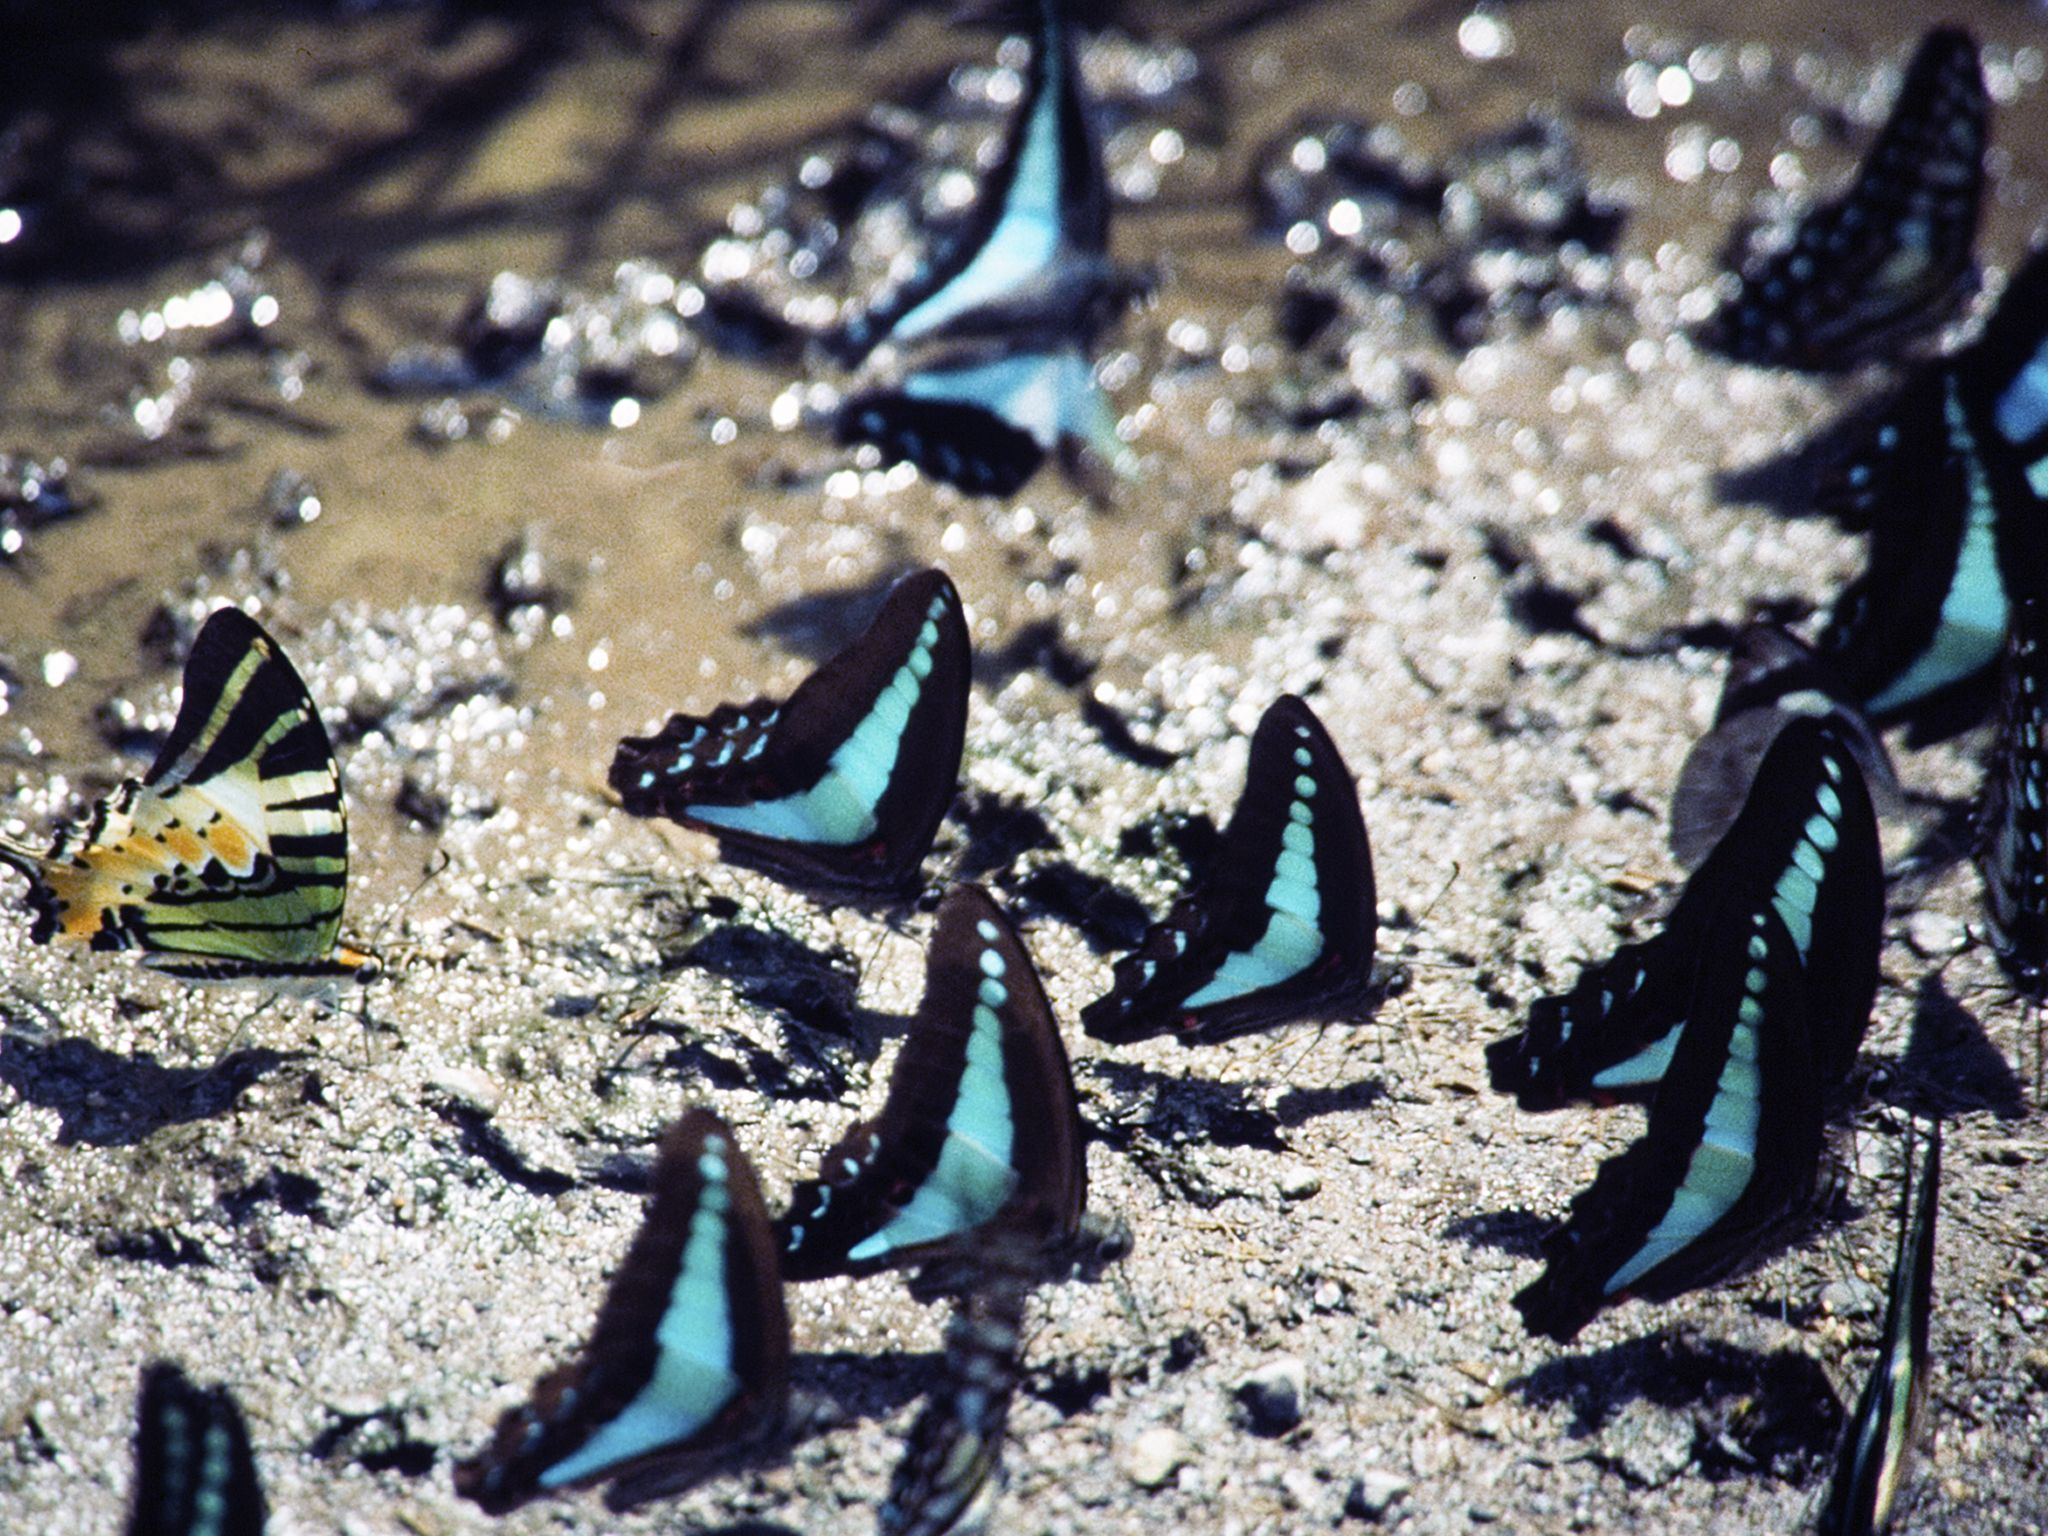 Common blue bottle butterflies, and a five-bar swallowtail. This image is from Wild Indonesia. [Photo of the day - آوریل 2015]